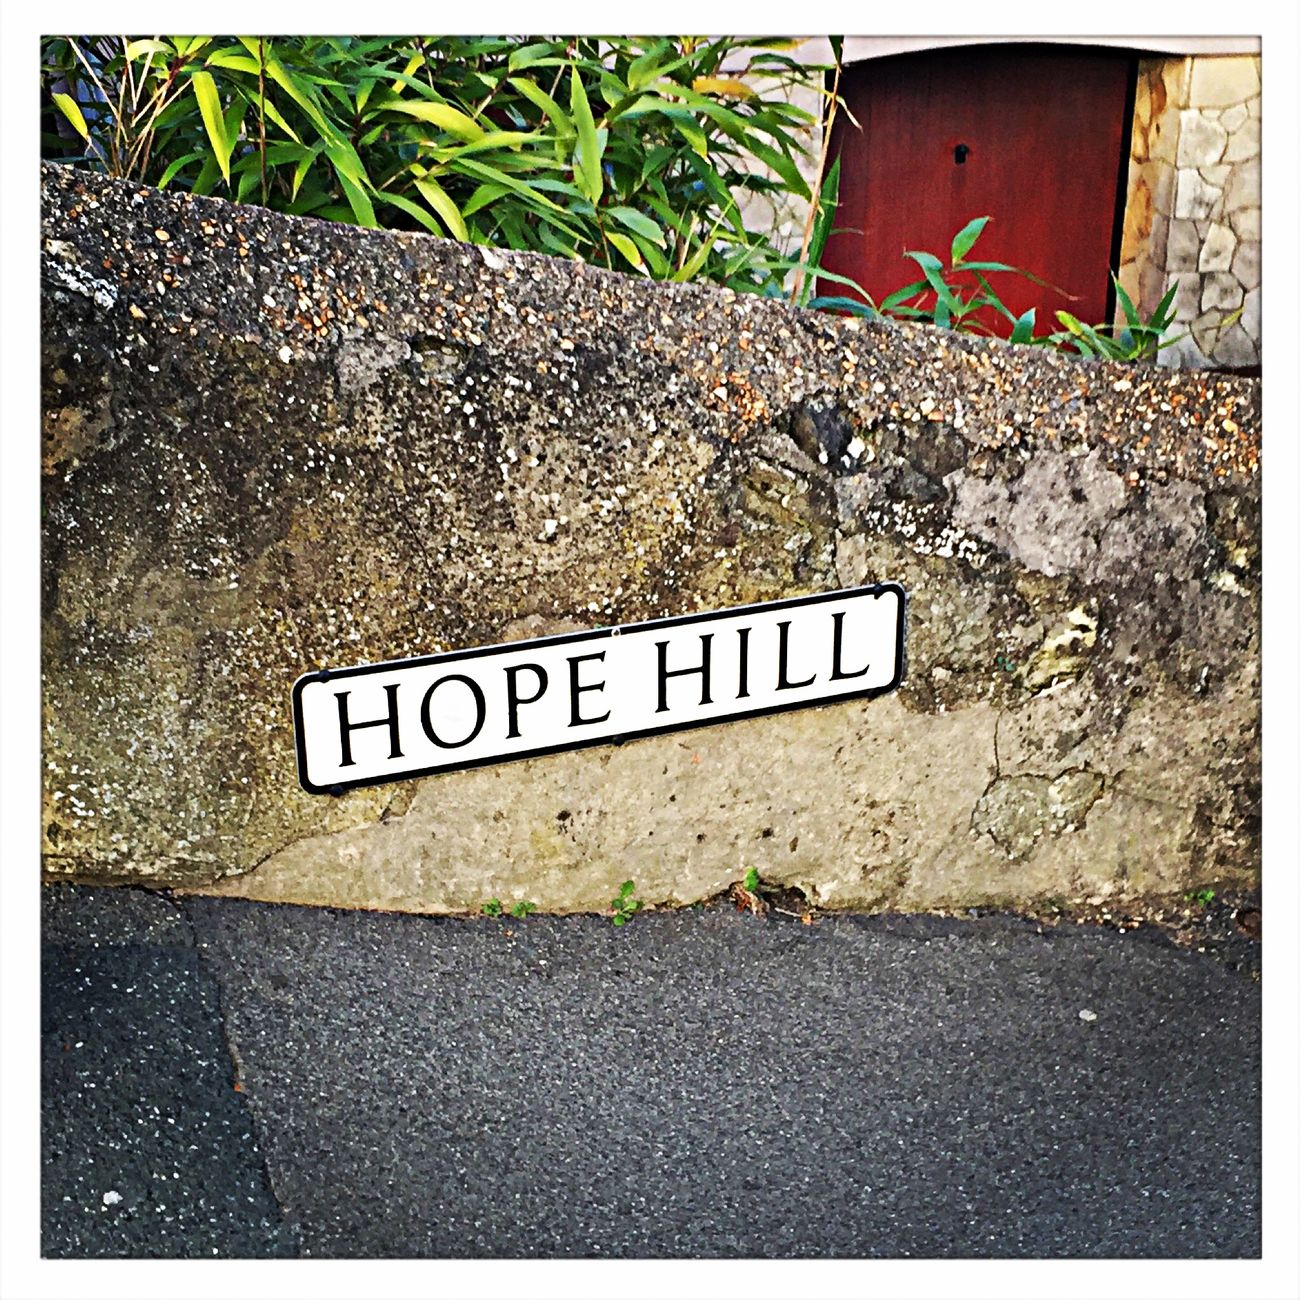 Hope Hill Shanklin Isle Of Wight